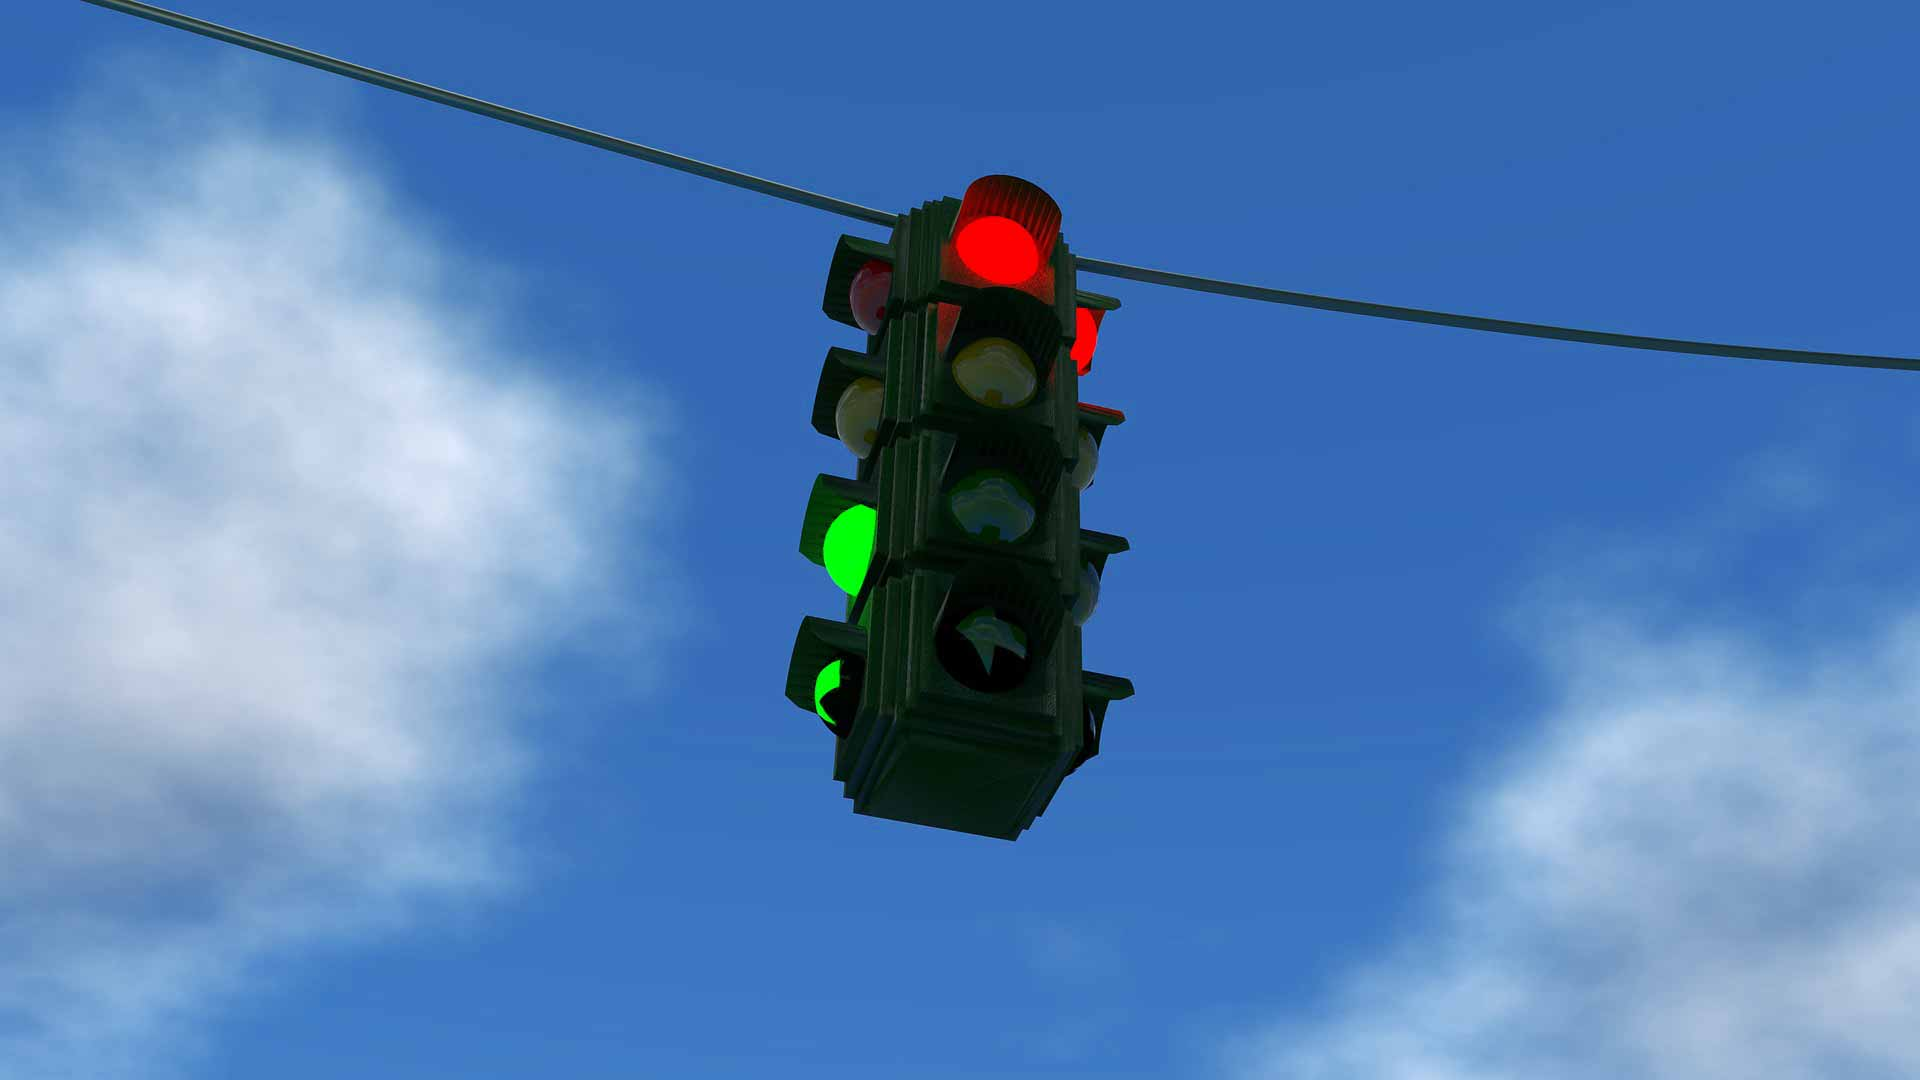 Traffic-light sky